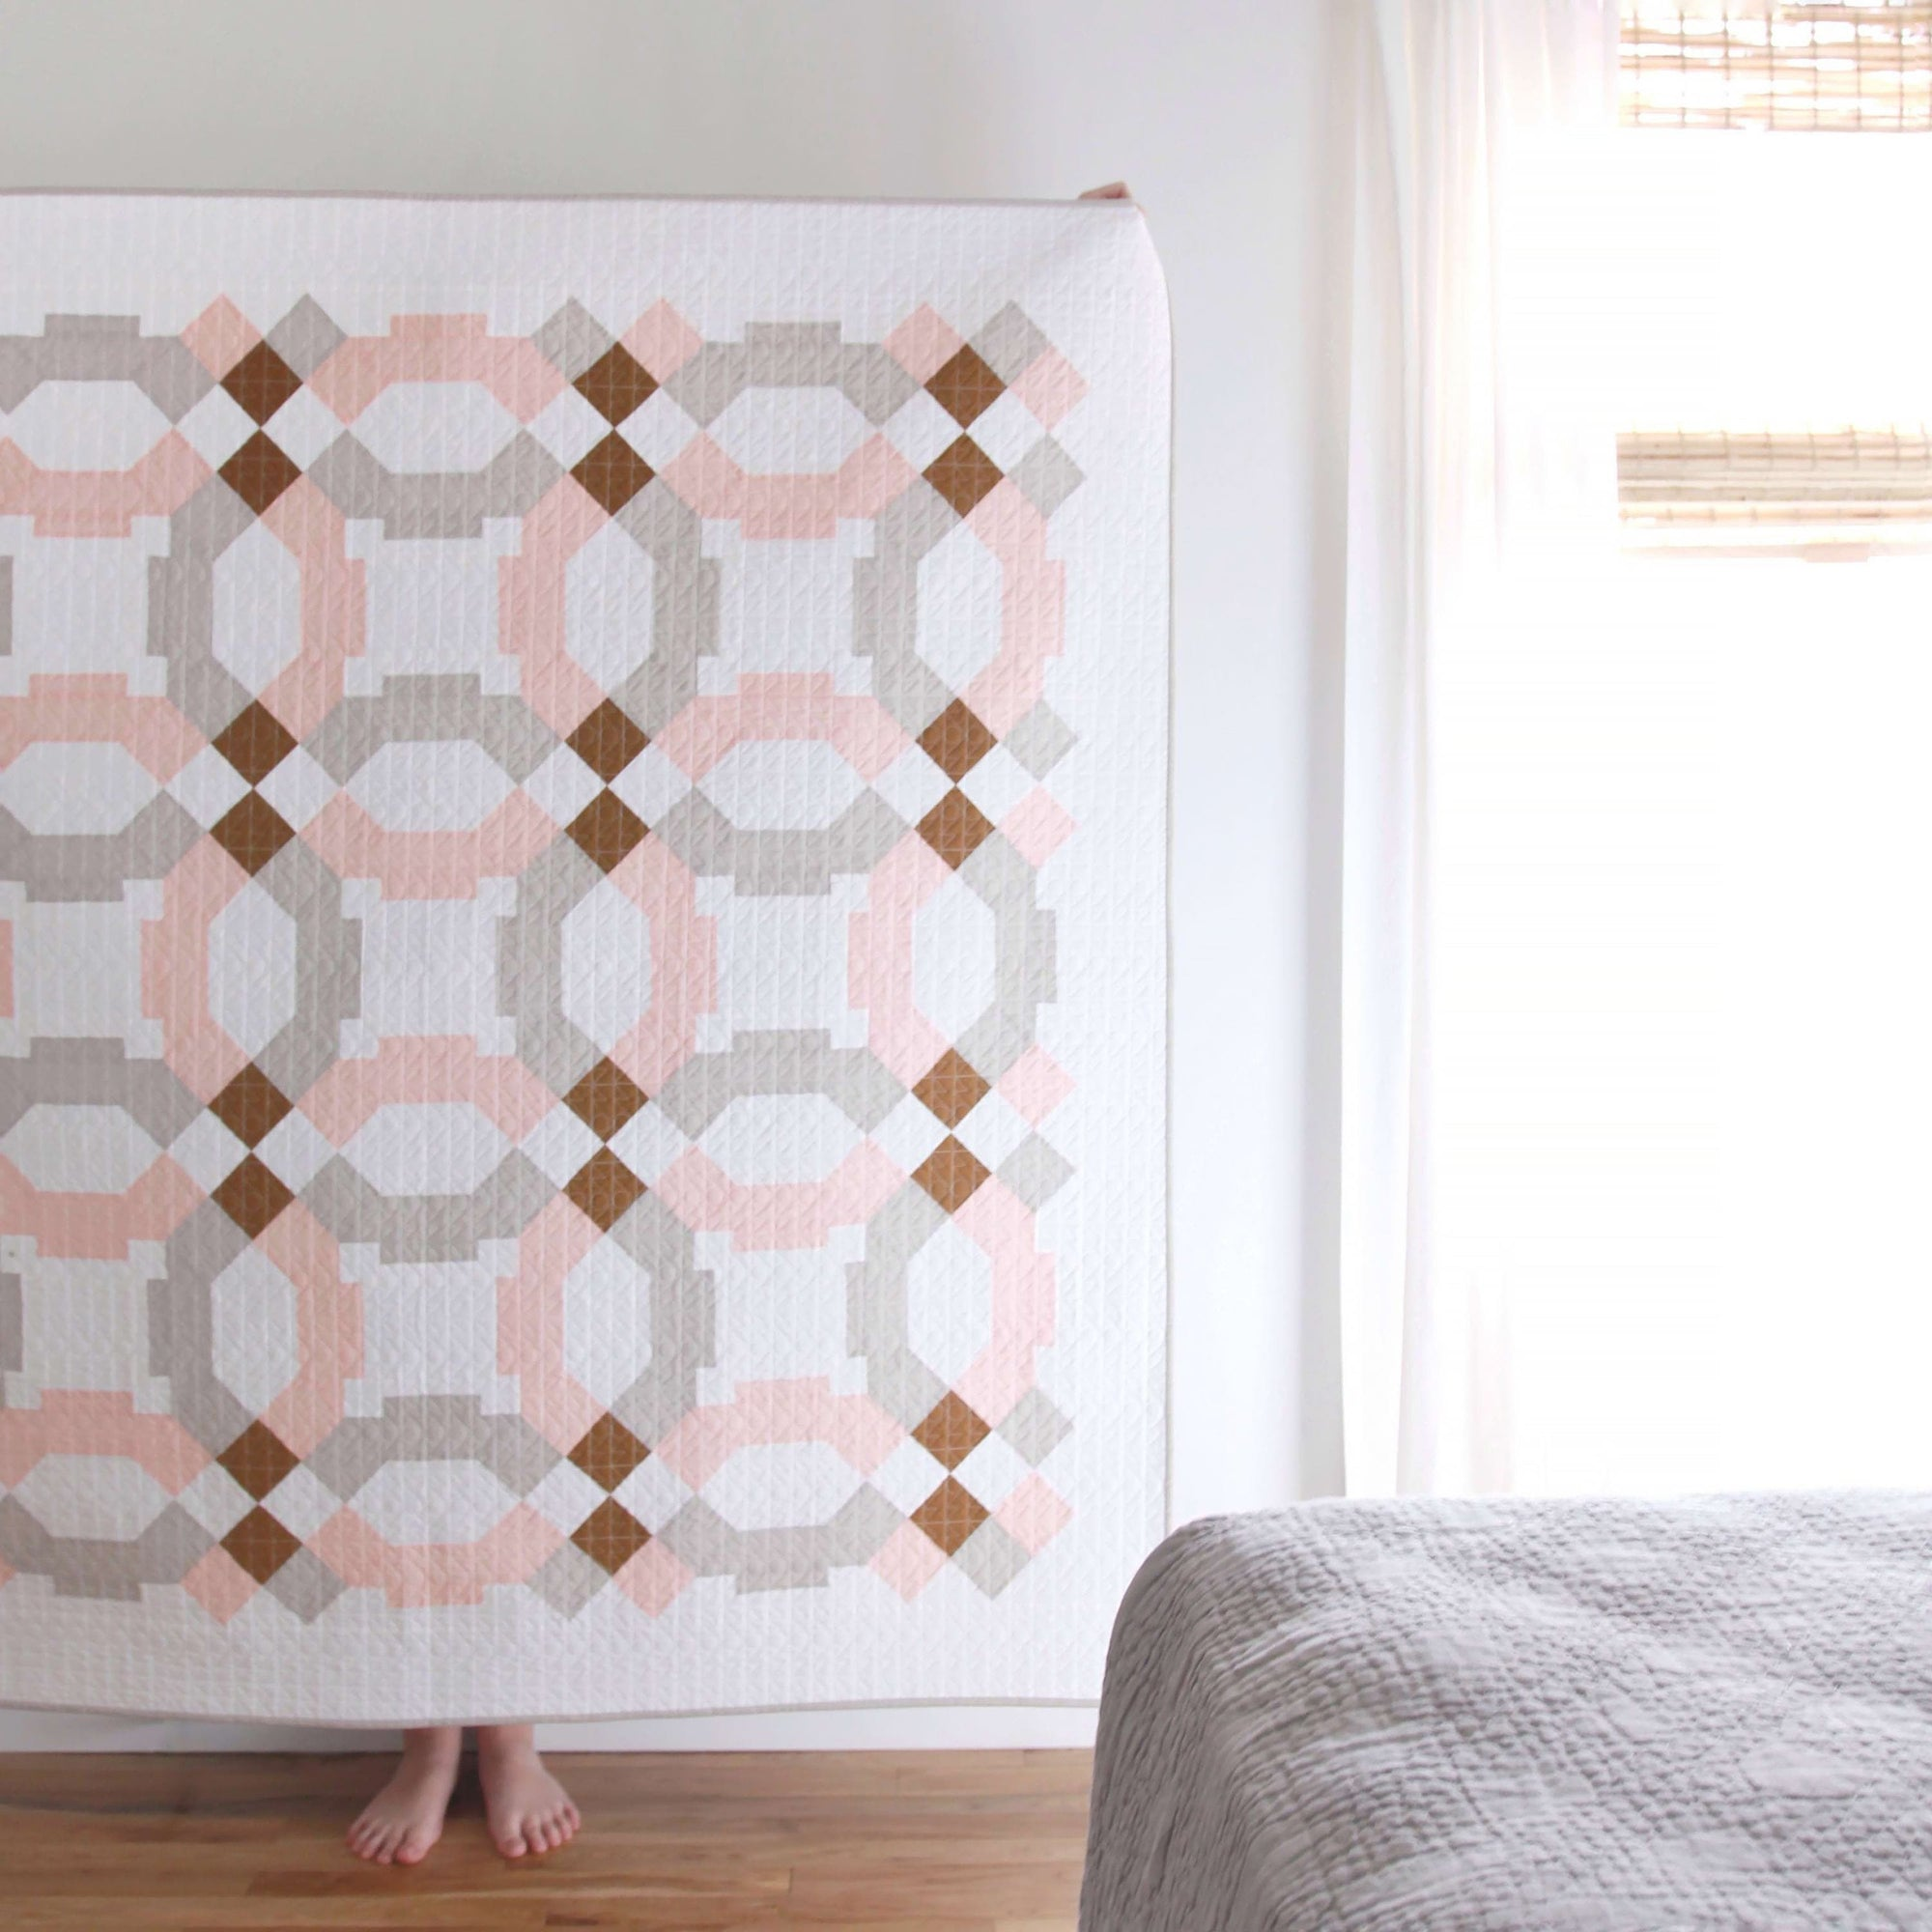 Vegas Wedding Quilt Pattern